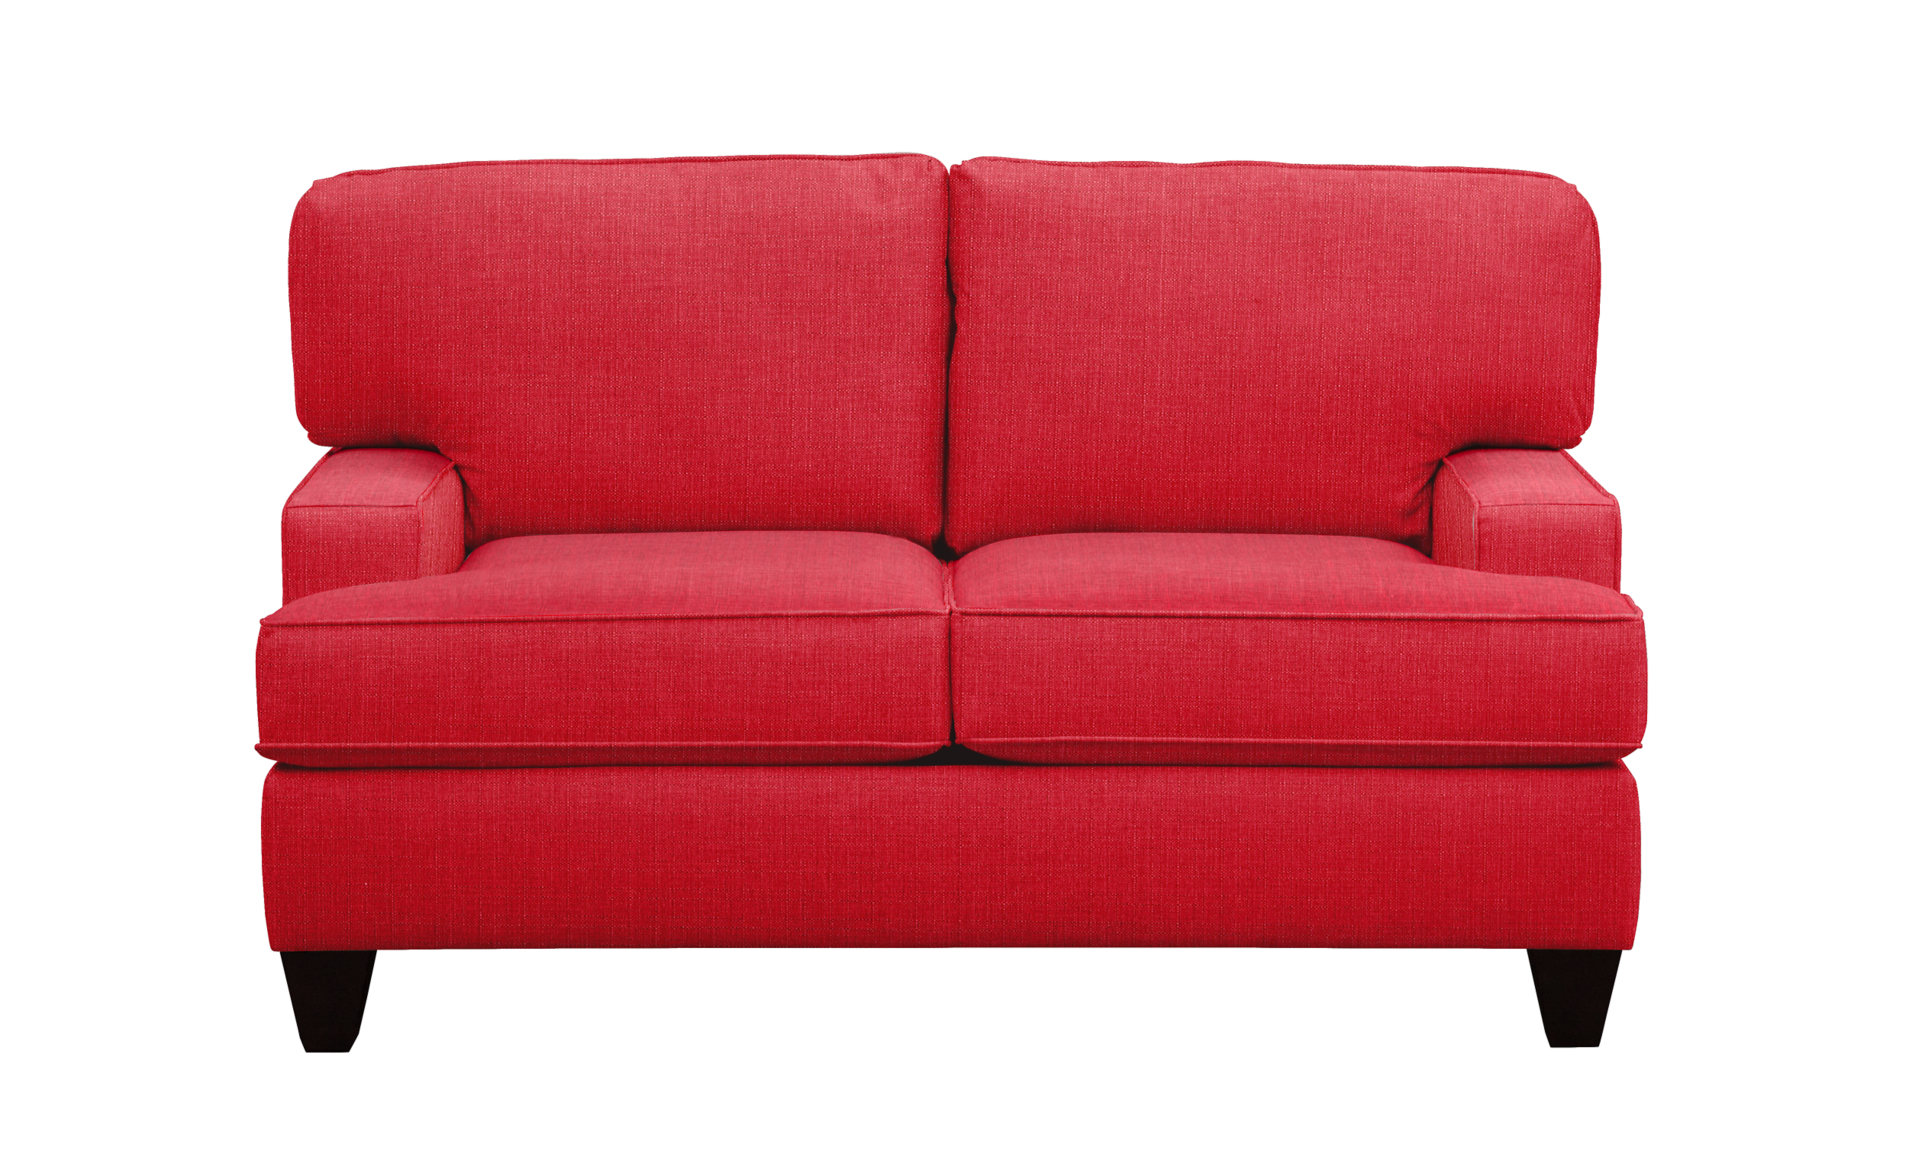 Small Size Sofas 5 Small Sectional Sofas To Fit The